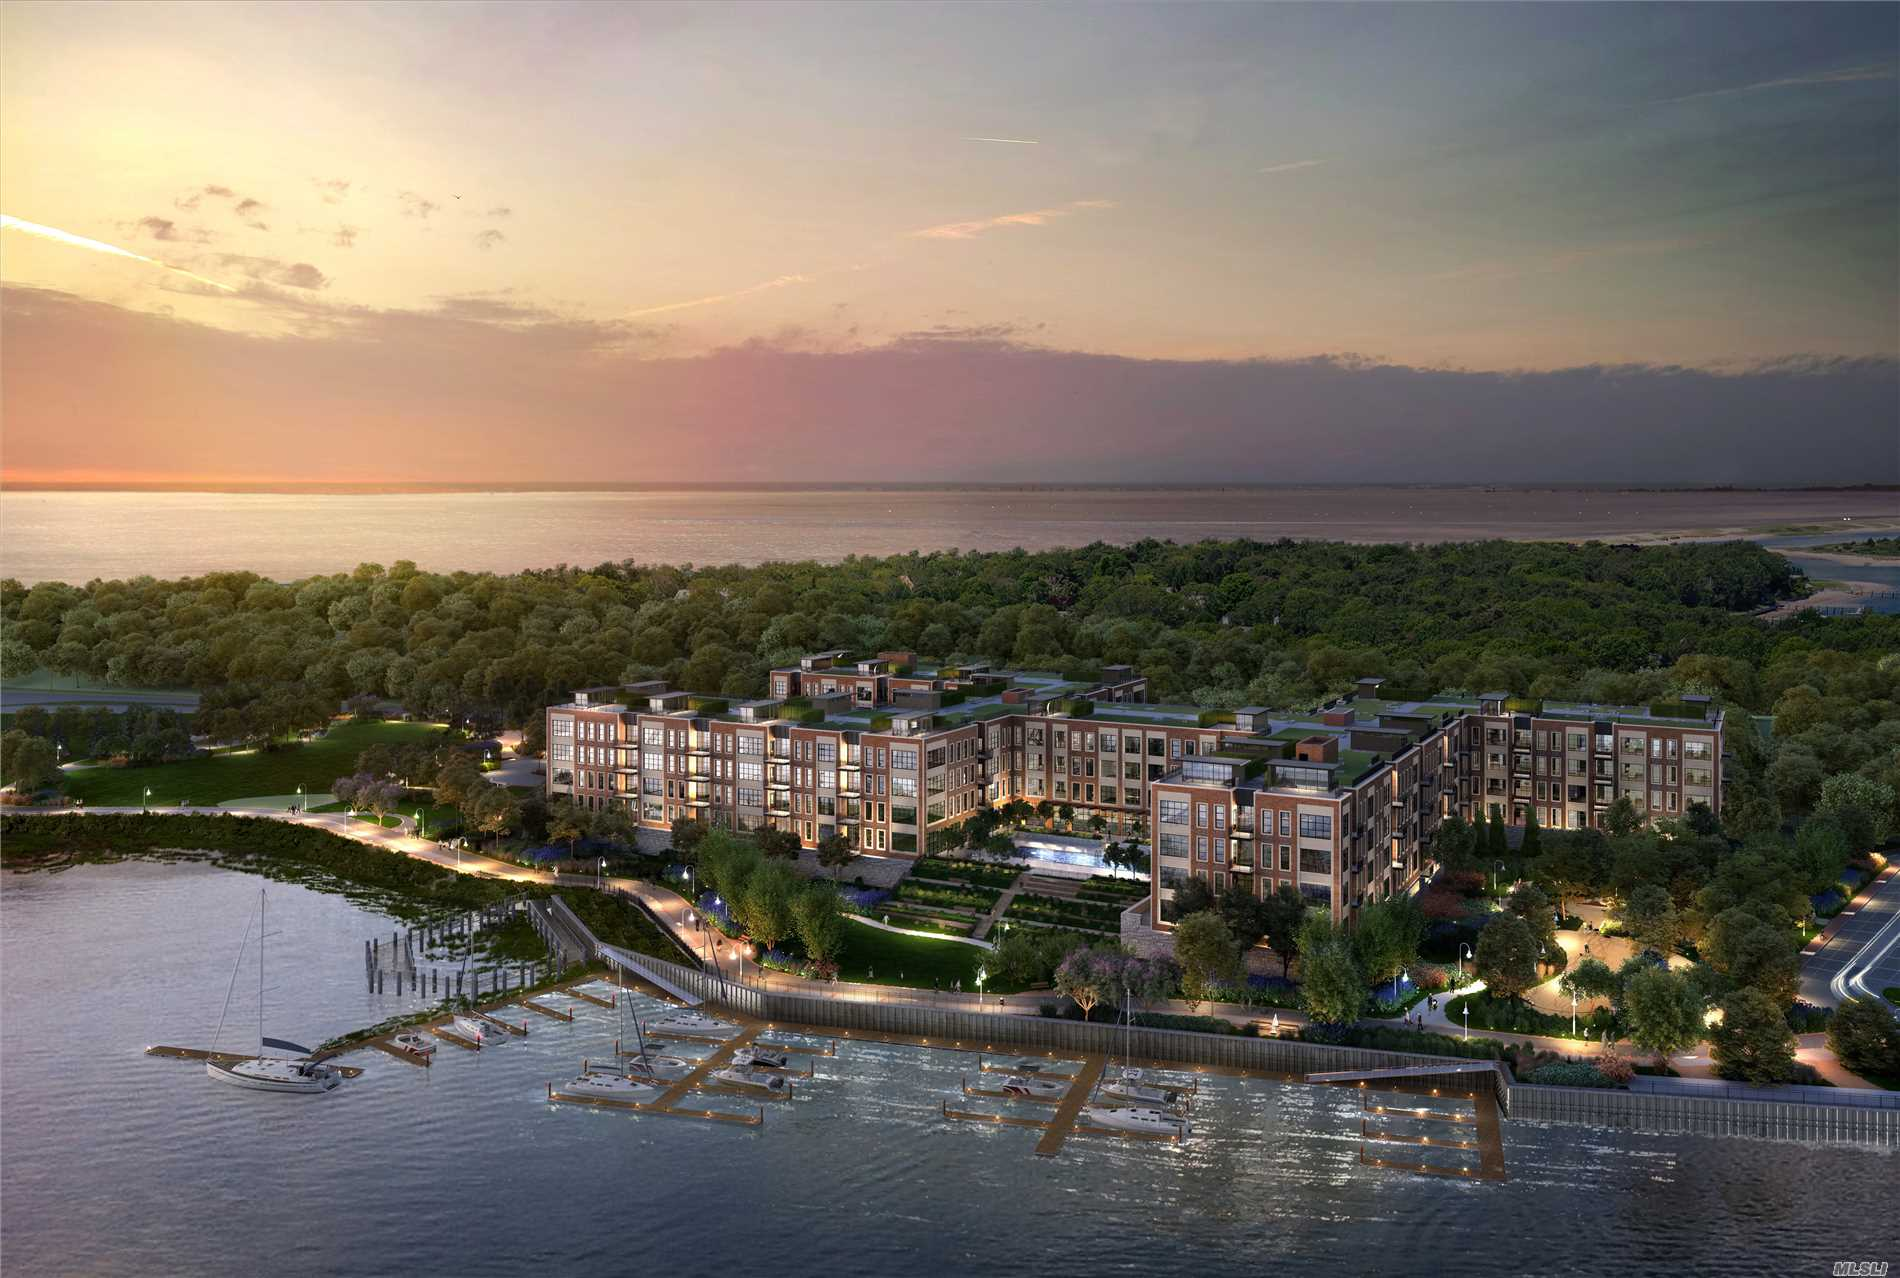 Property for sale at 100 Garvies Point Road # 1308, Glen Cove NY 11542, Glen Cove,  New York 11542